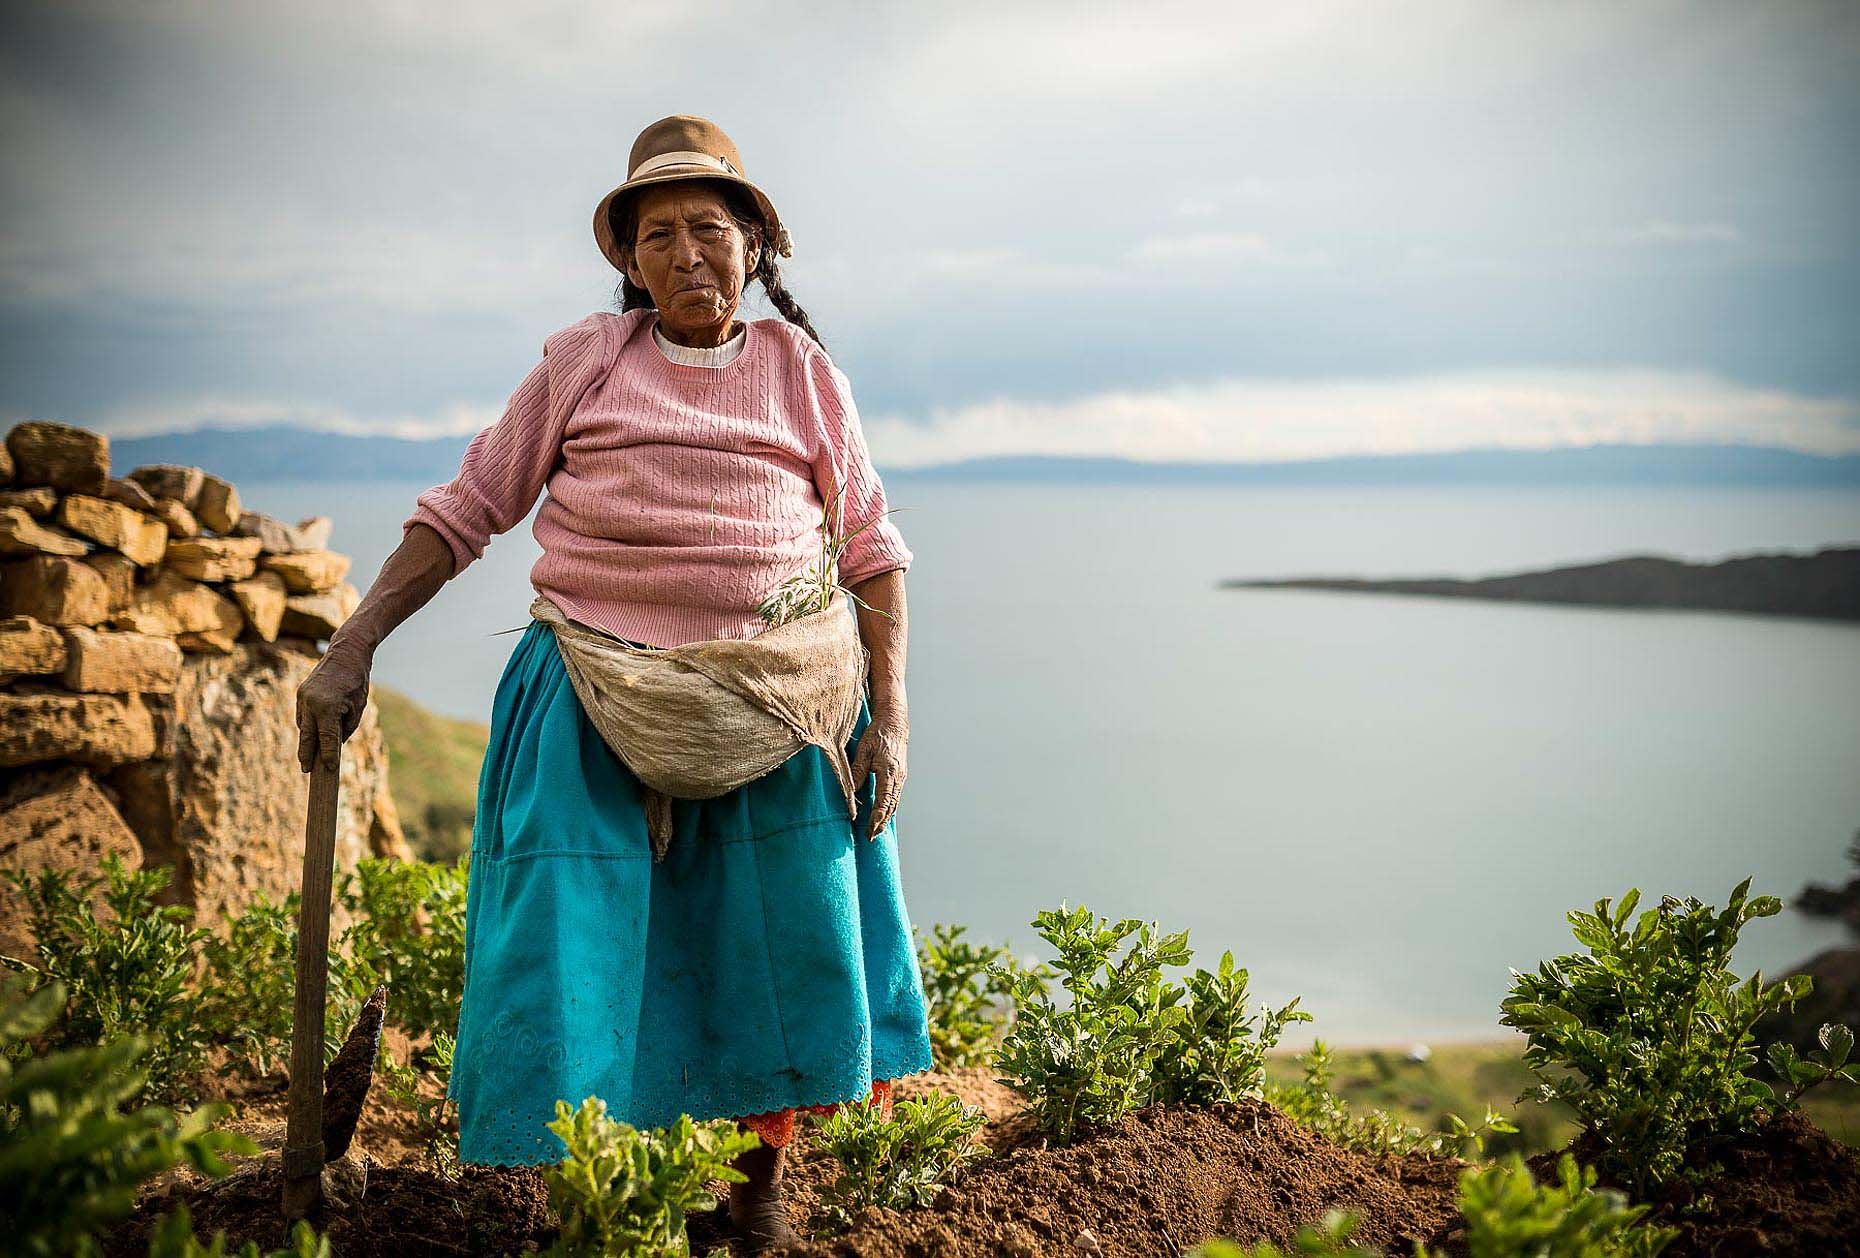 portrait-isla-del-sol-lake-titicaca-bolivia-travel-photography-16